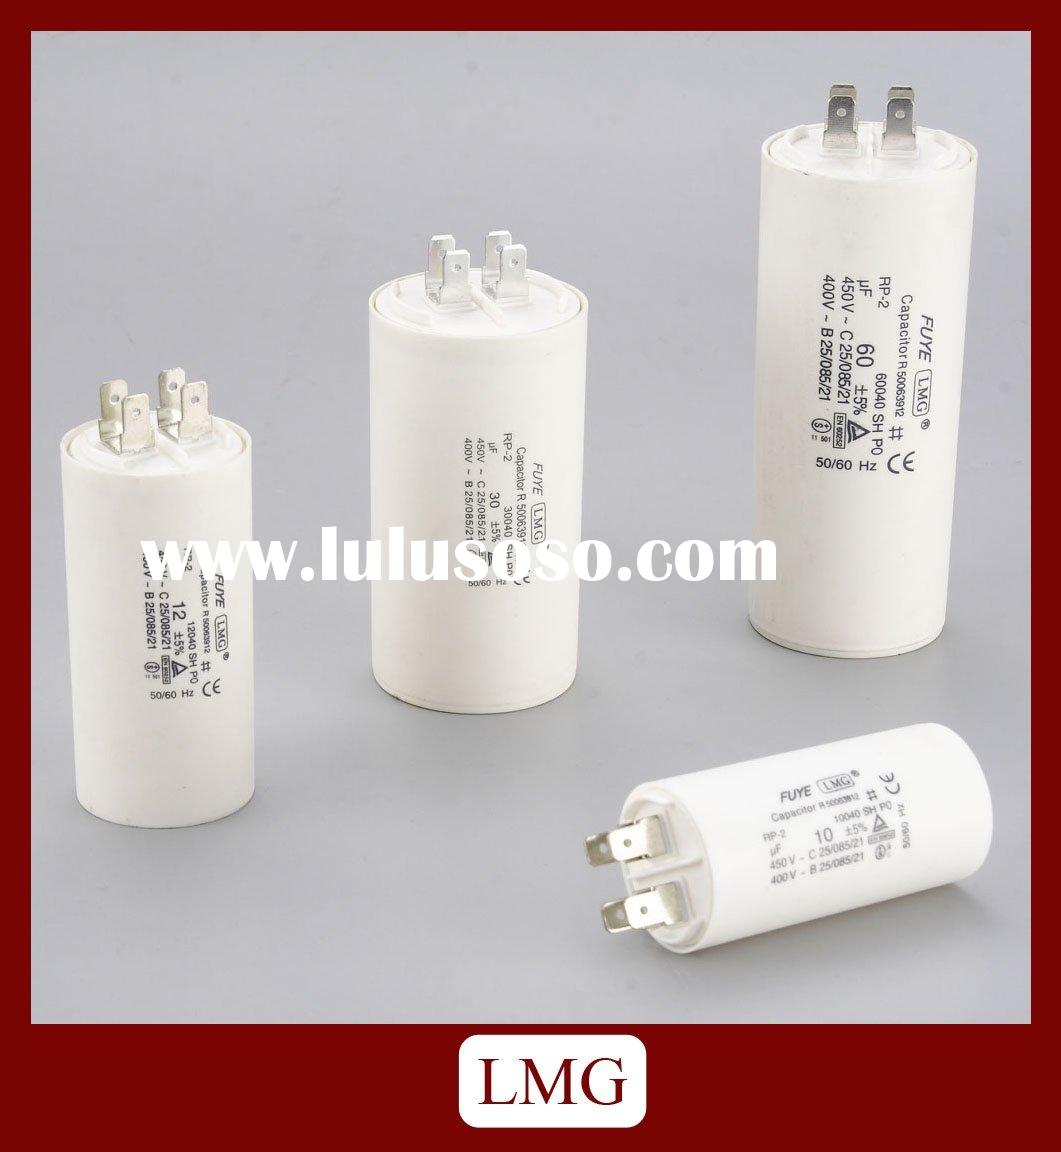 Run Capacitor Cbb60 Run Capacitor Cbb60 Manufacturers In